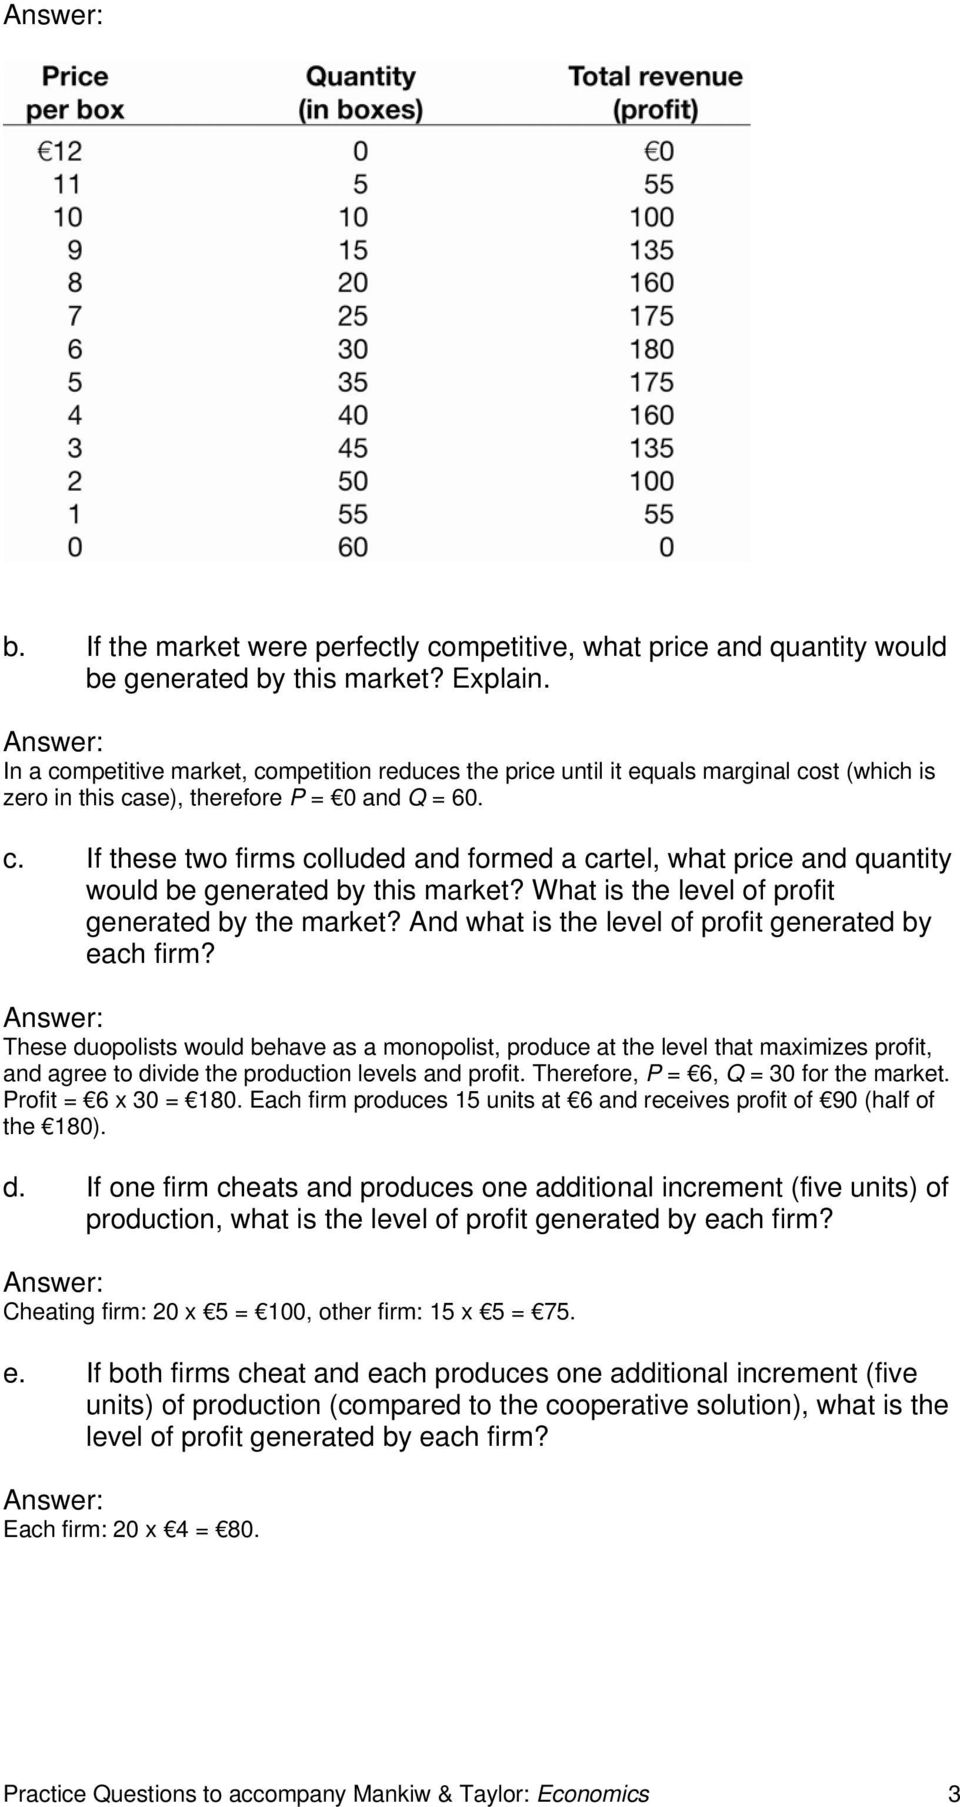 What is the level of profit generated by the market? And what is the level of profit generated by each firm?